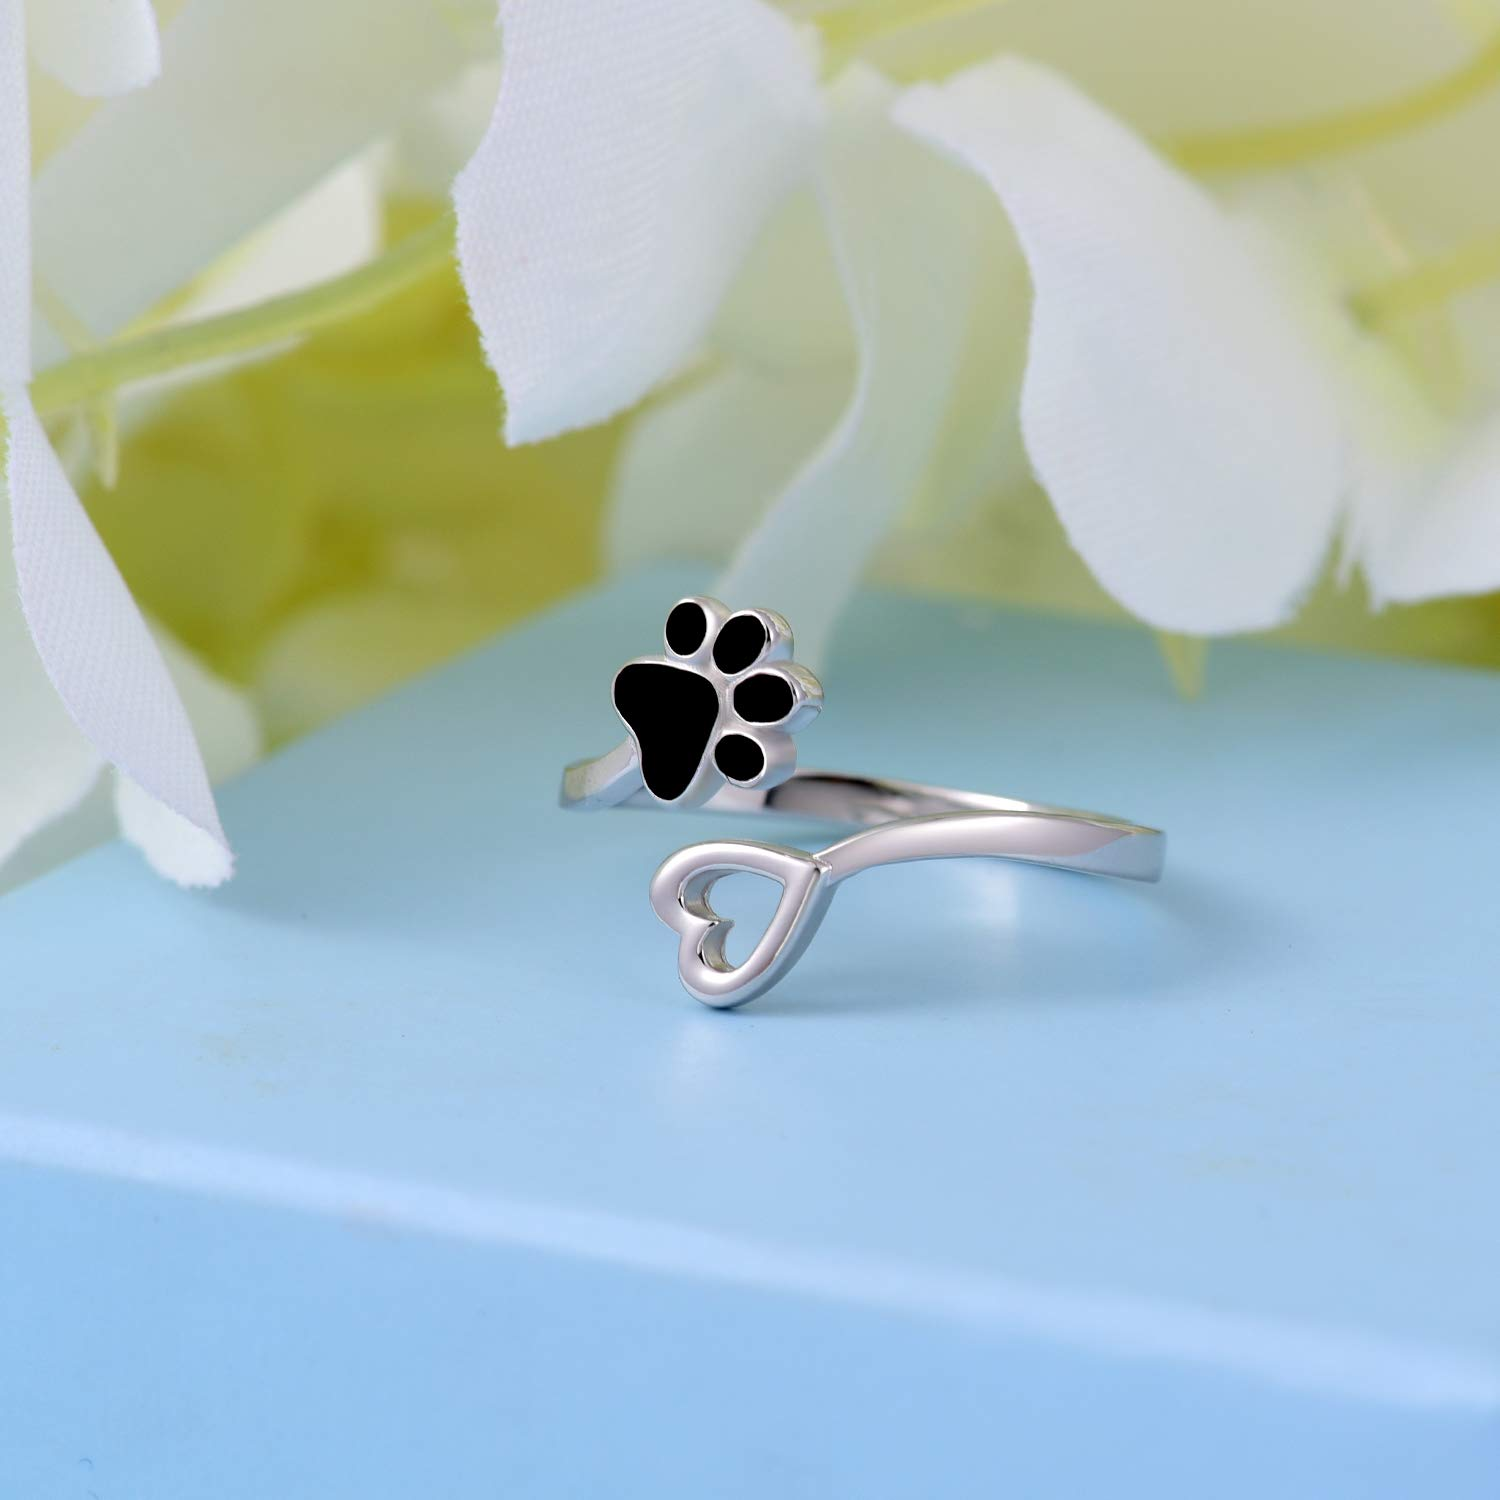 ACJFA 925 Sterling Silver Paw Print Love Heart Ring Adjustable Wrap Open Rings Jewelry for Pet Dog Cat by ACJFA (Image #5)